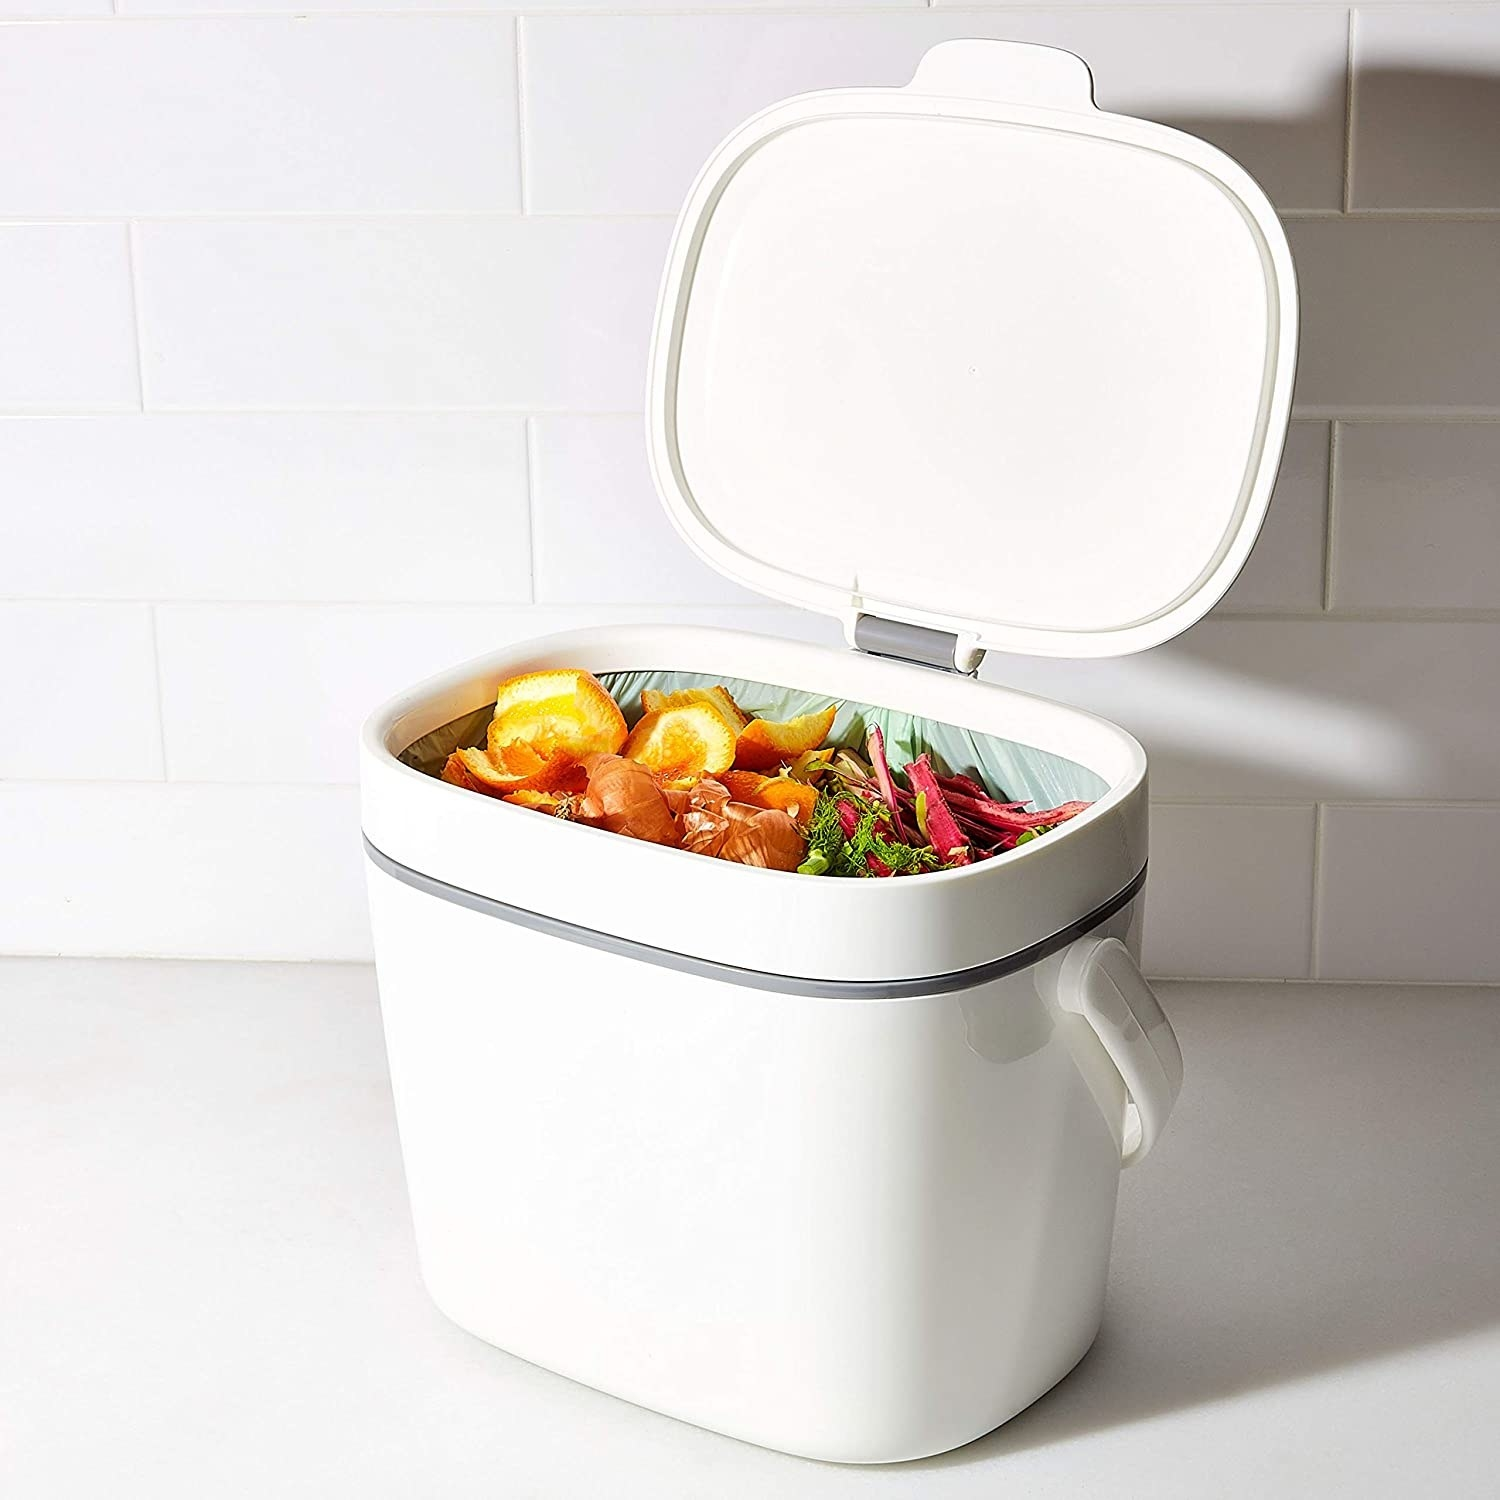 A smooth white canister with a lid, handle, and removable waste bag. It is filled with food trimmings.